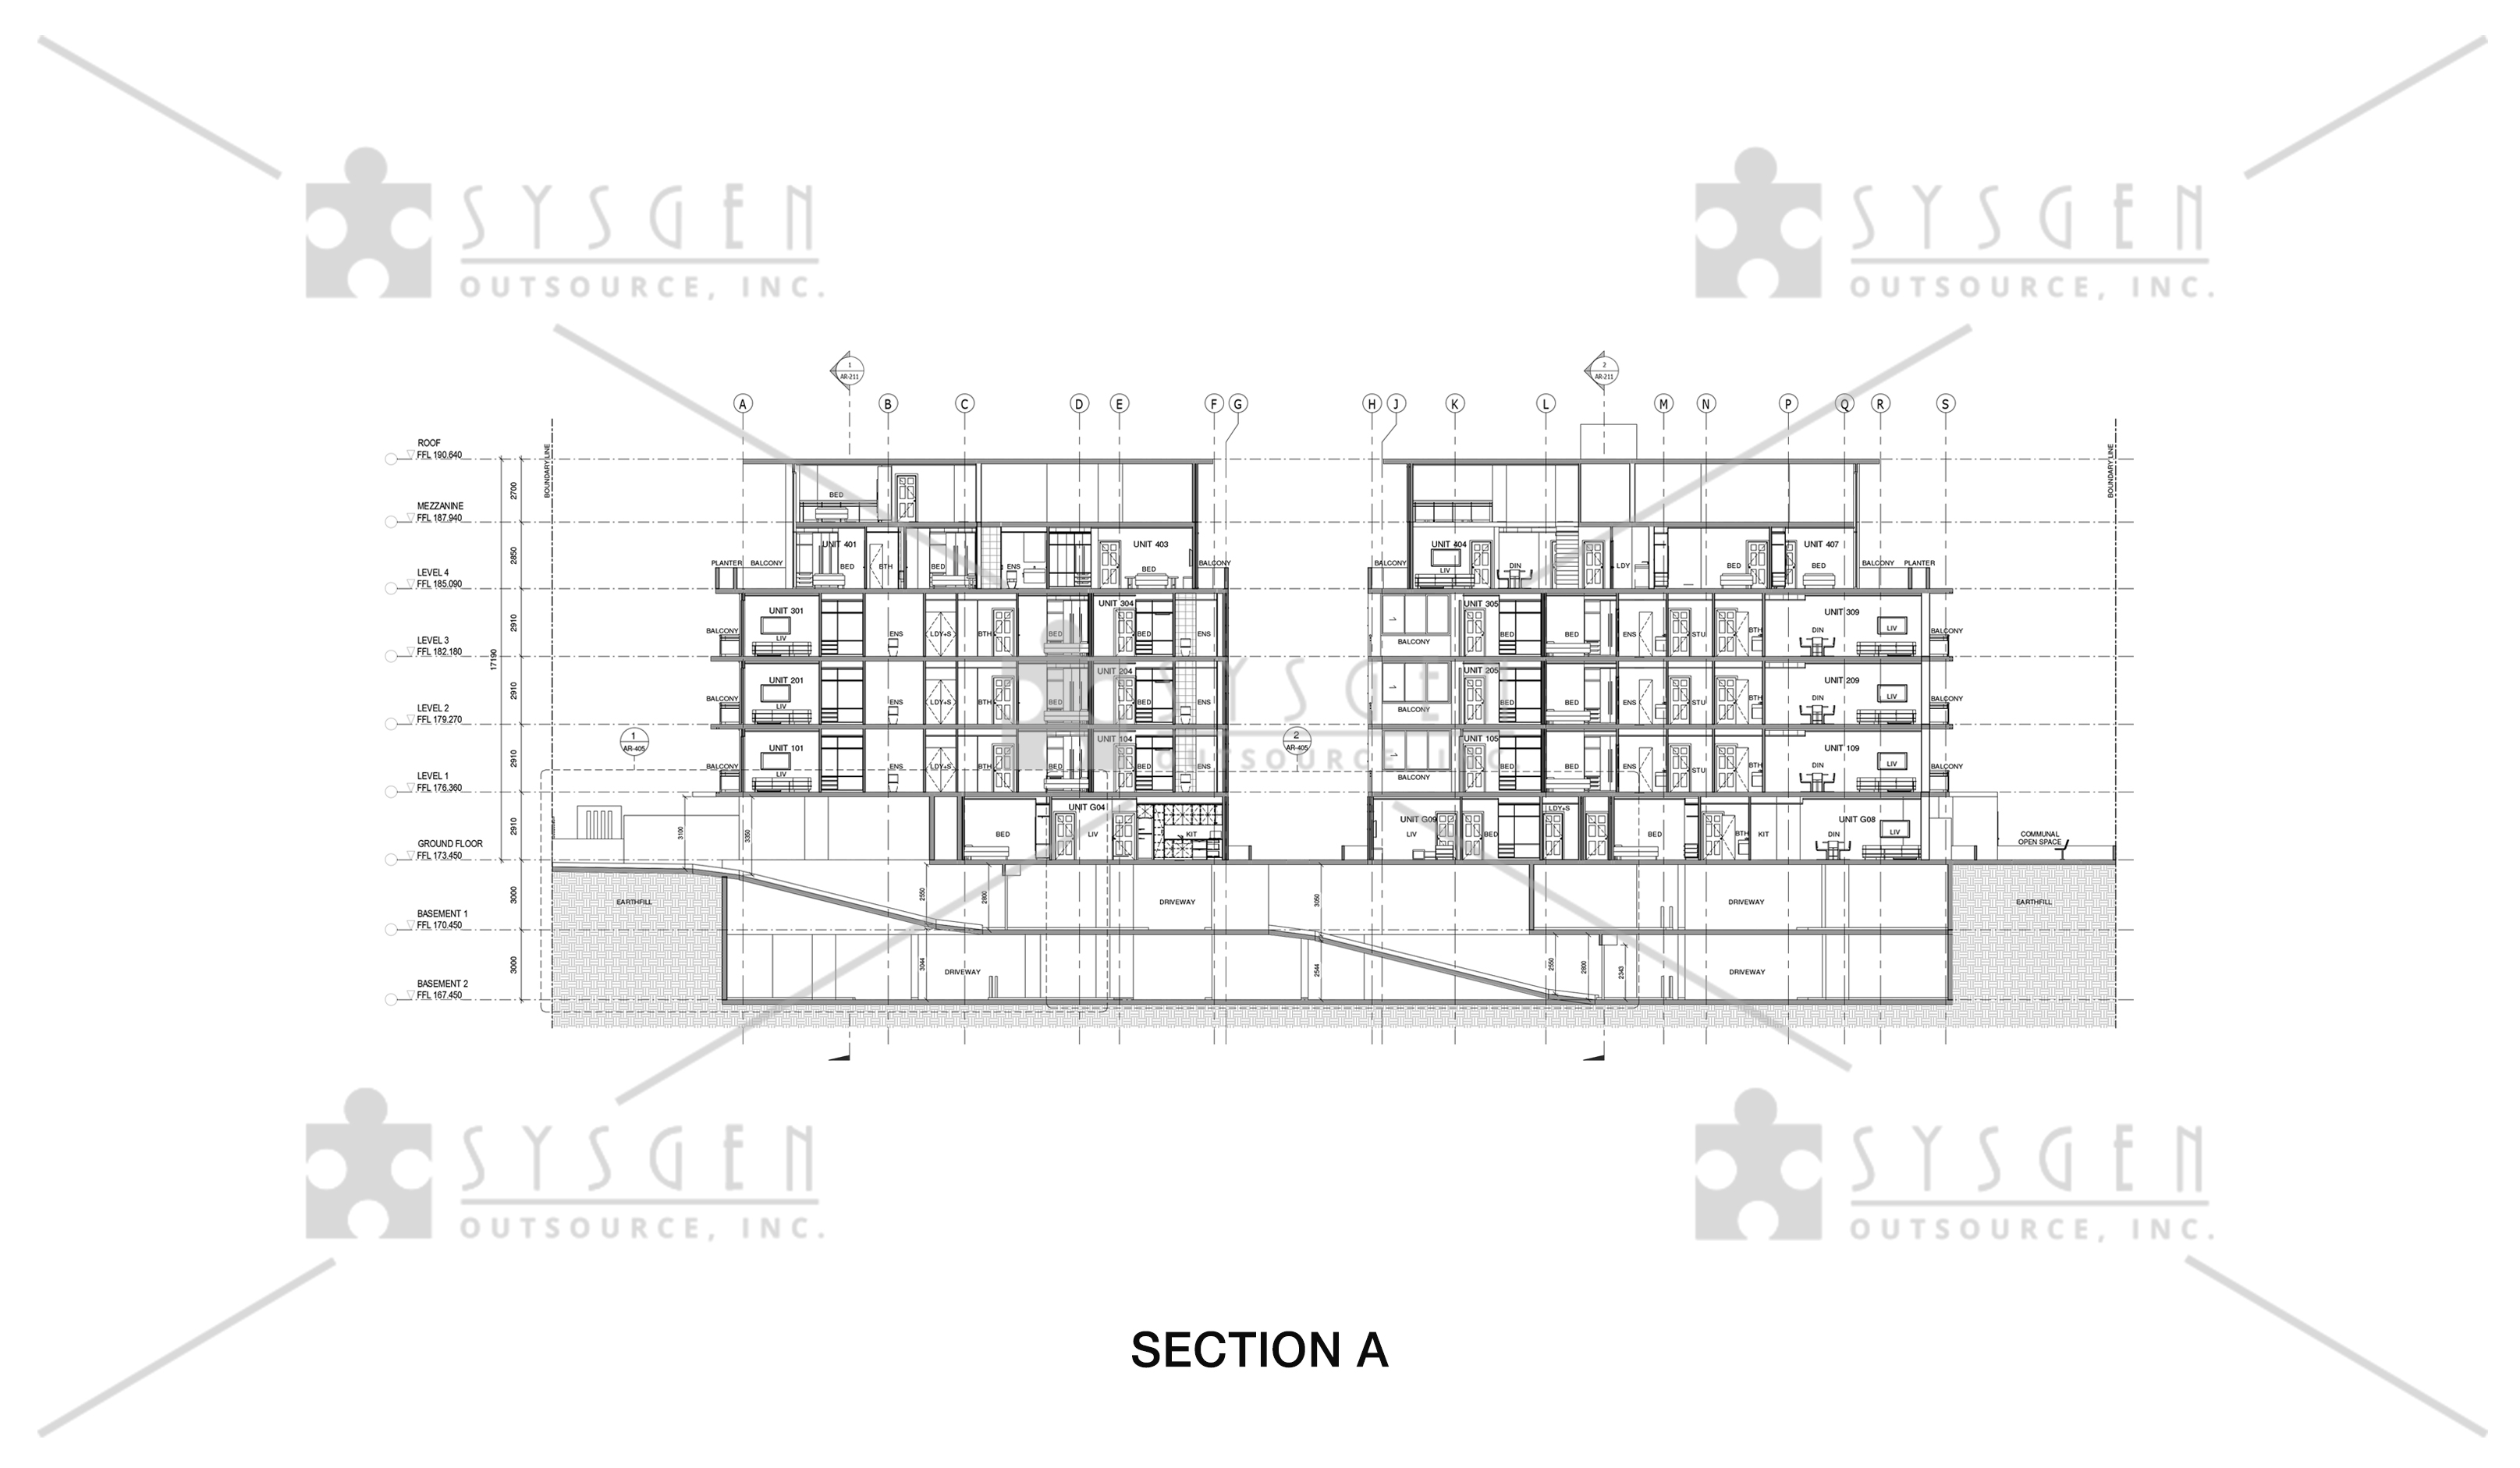 sysgen-outsource-cad-outsourcing-services-cad-conversion-revit-4-storey-residential12